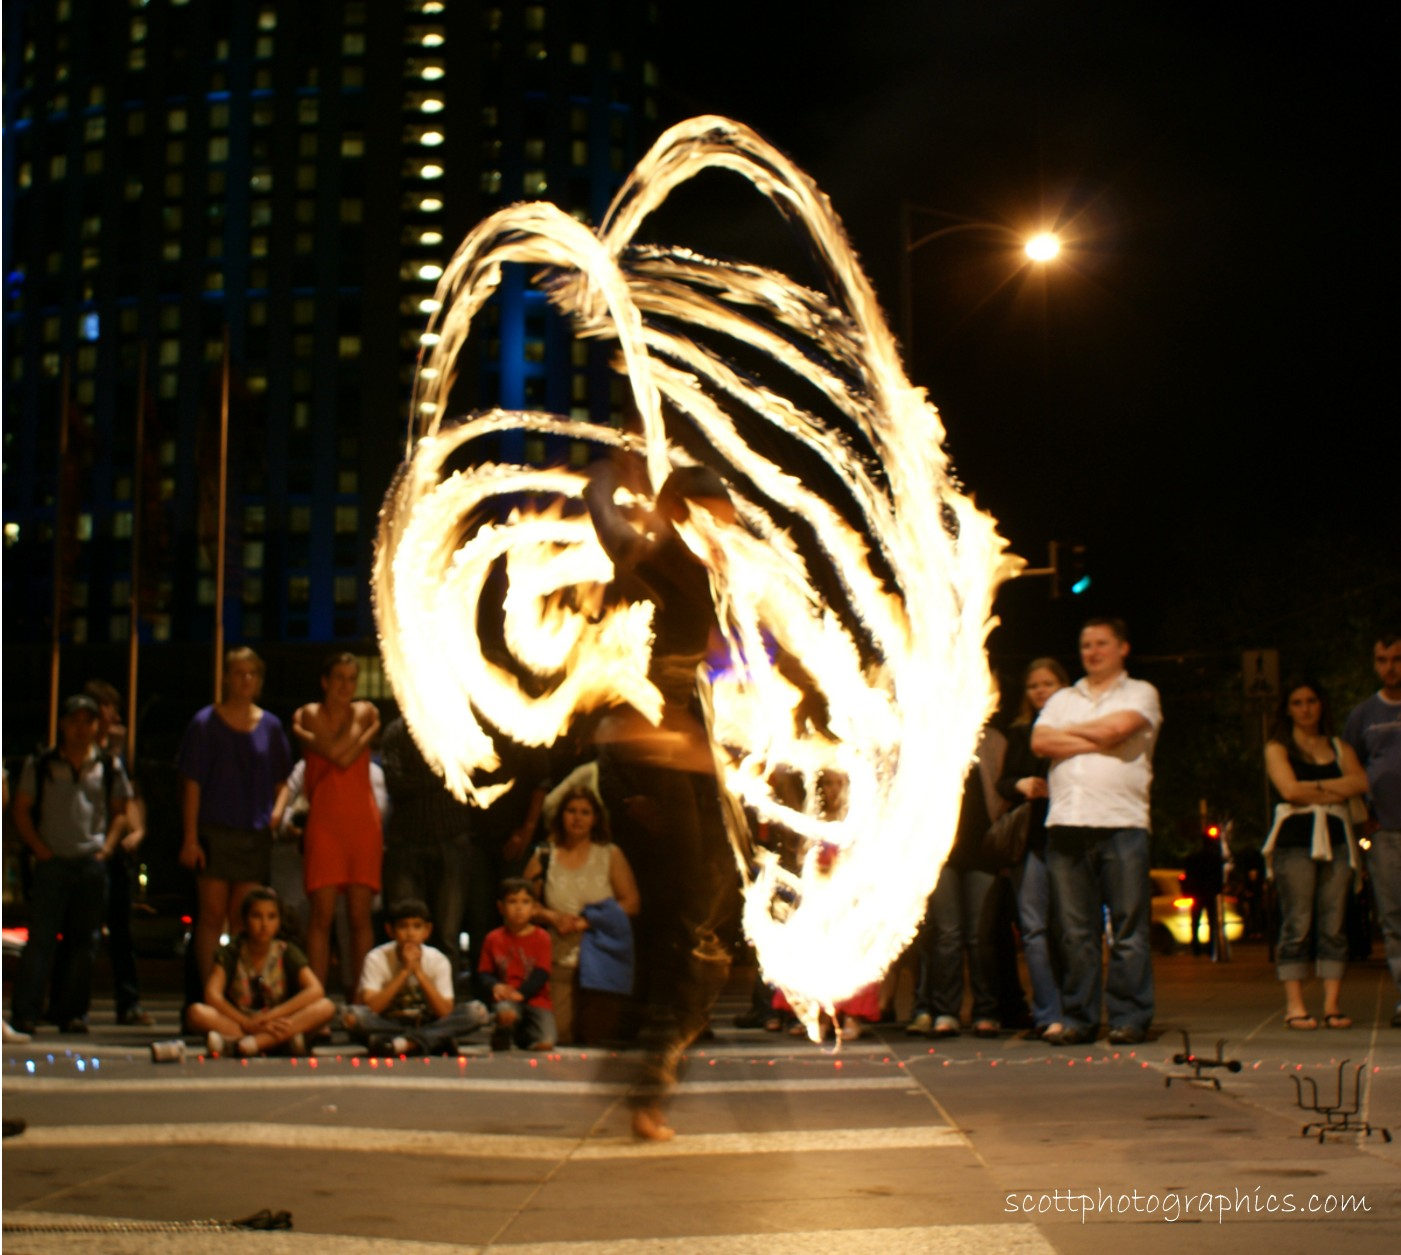 https://www.images.scottphotographics.com/shot-of-the-day/%2318/fire-twirler-southbank-promenade-melbourne-3.jpg